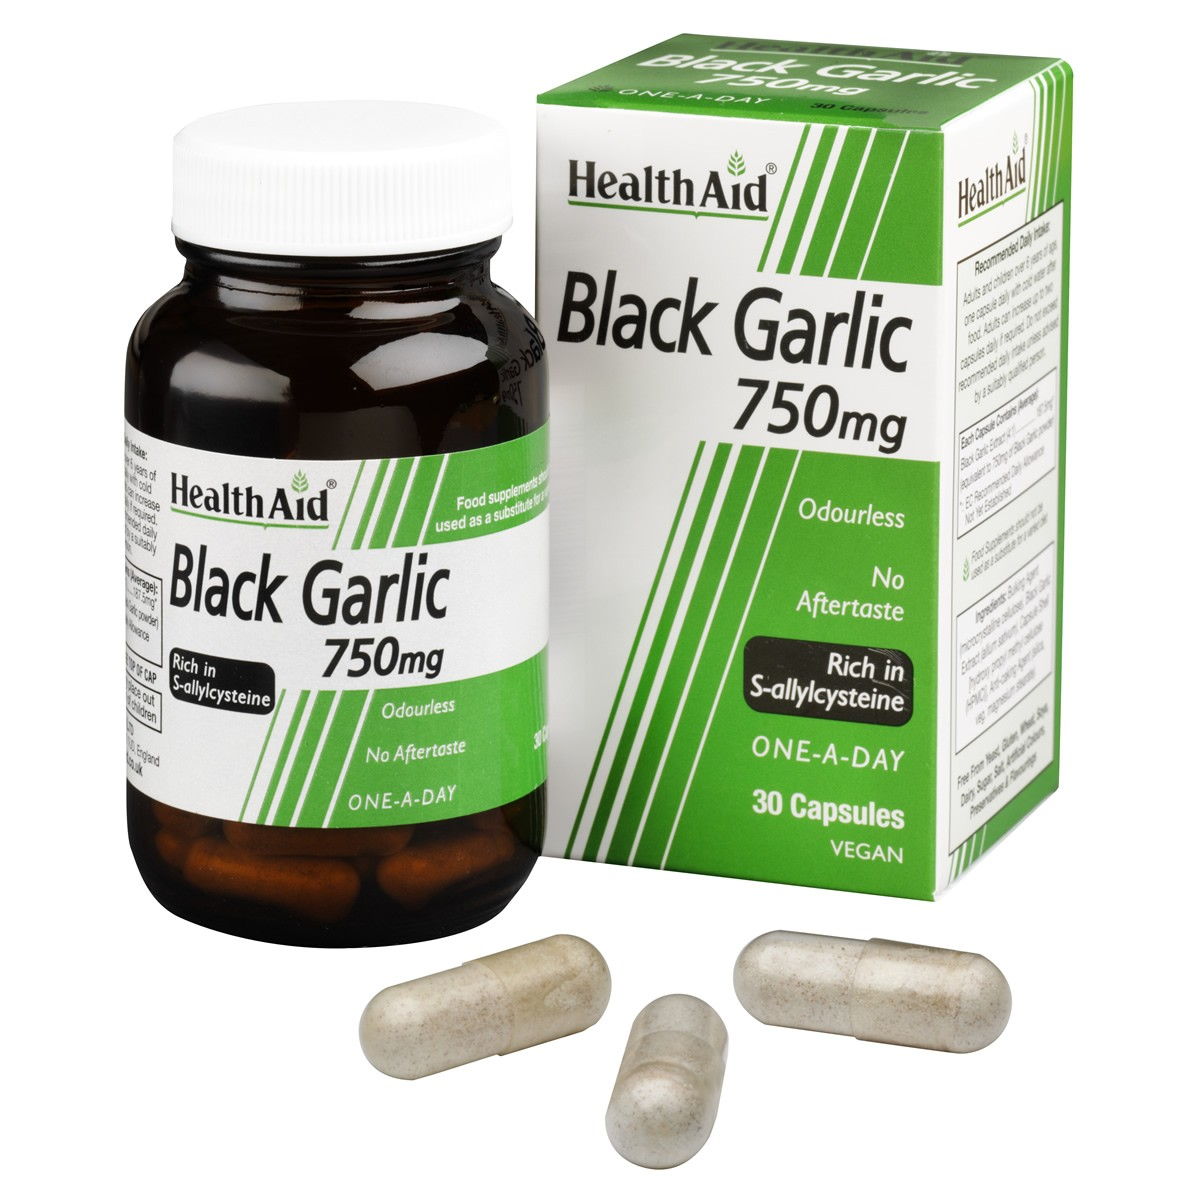 HealthAid Black Garlic 750mg